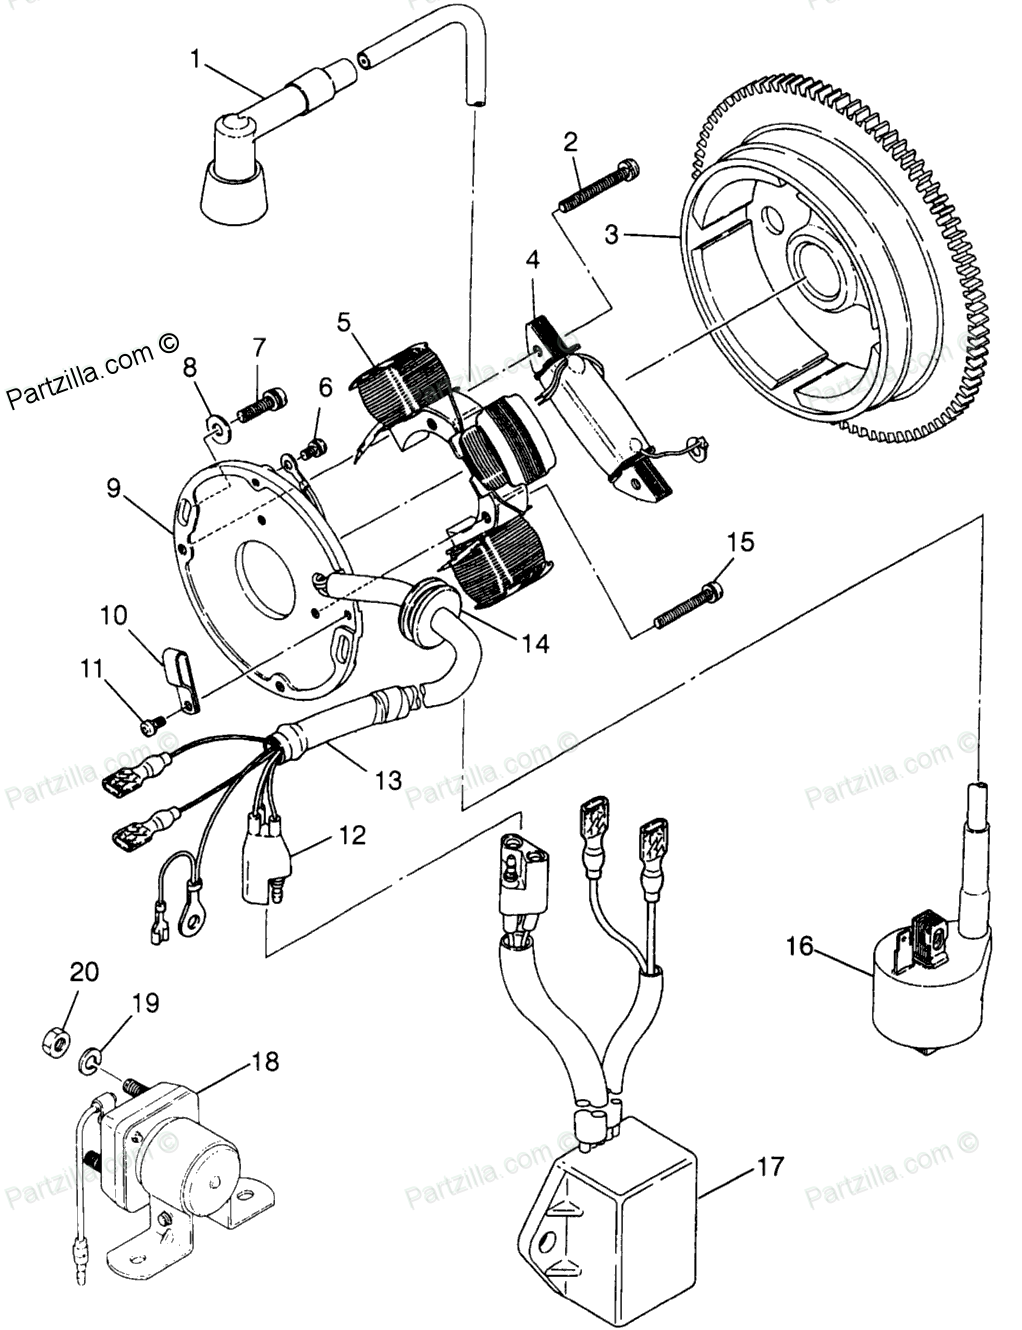 [DIAGRAM] 1995 Polaris 250 Trail Boss Wiring Diagram FULL